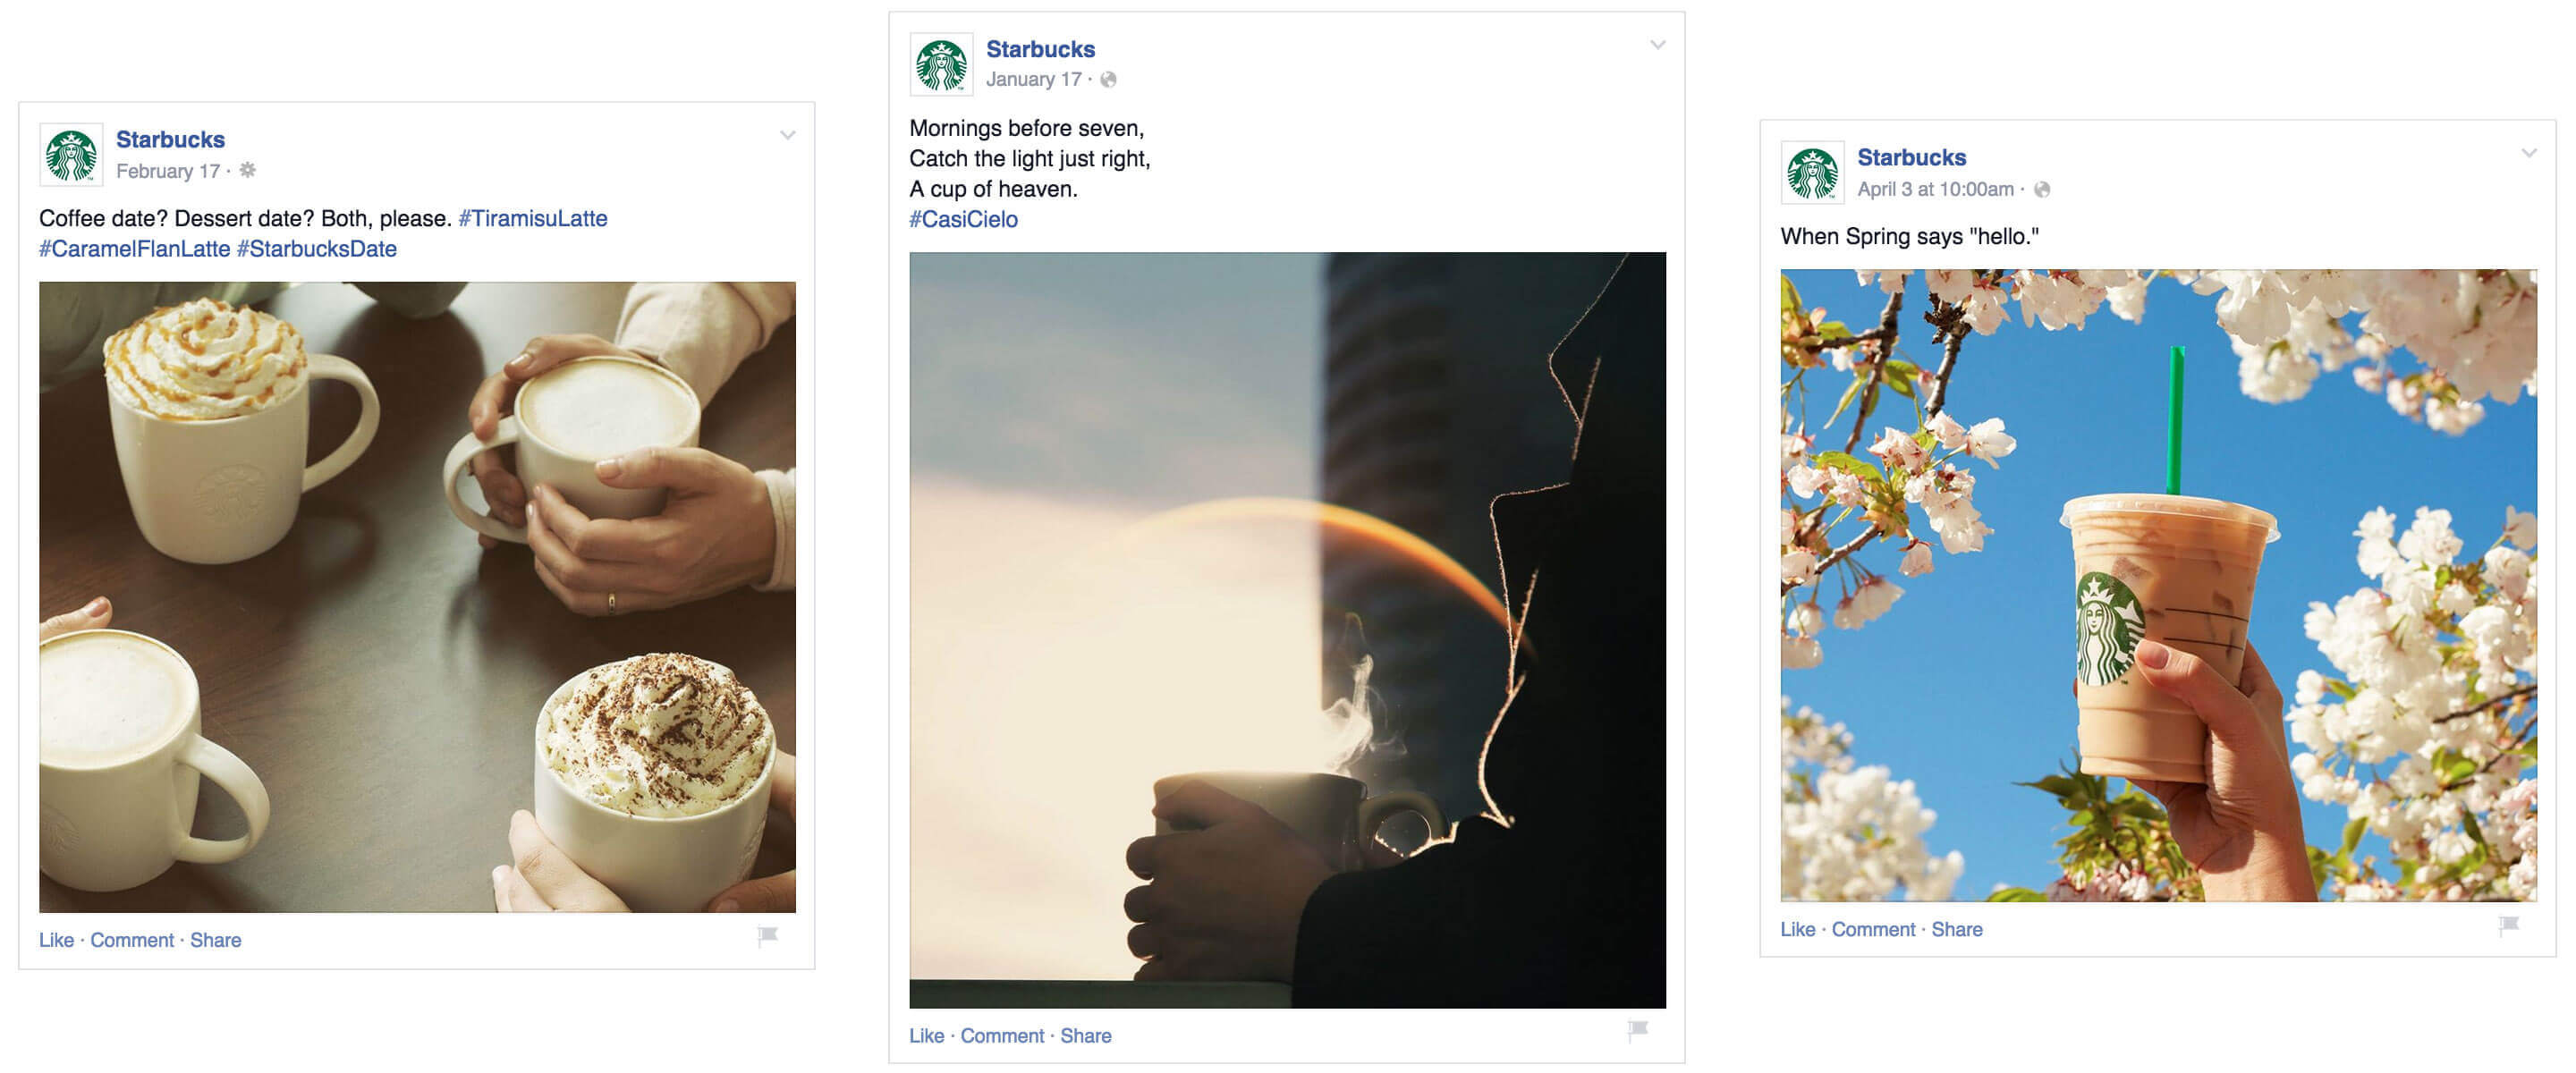 Starbucks Facebook Posts Engaging Photos Minimal Copy Creative